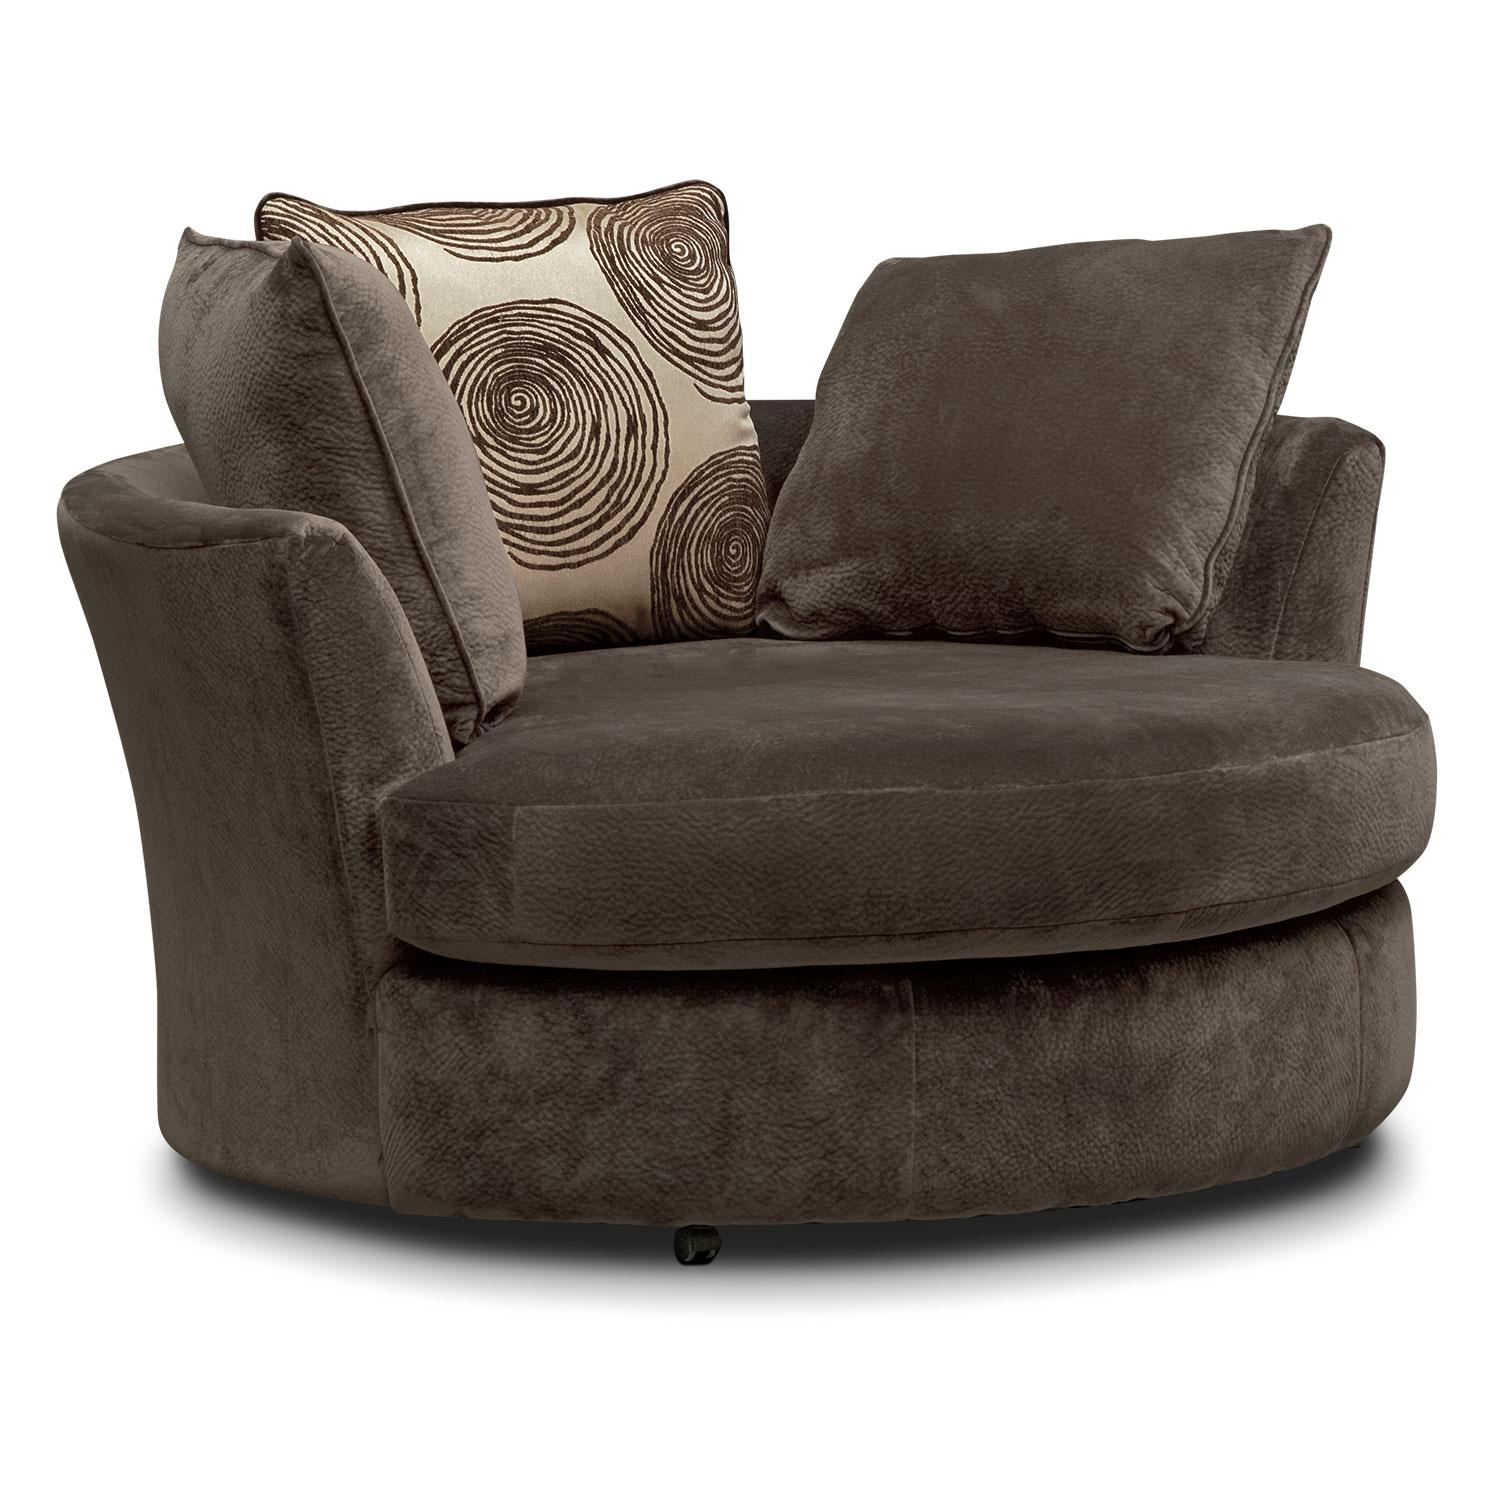 Cordelle Sofa And Swivel Chair Set – Chocolate | Value City Furniture With Regard To Sofa And Chair Set (View 18 of 20)